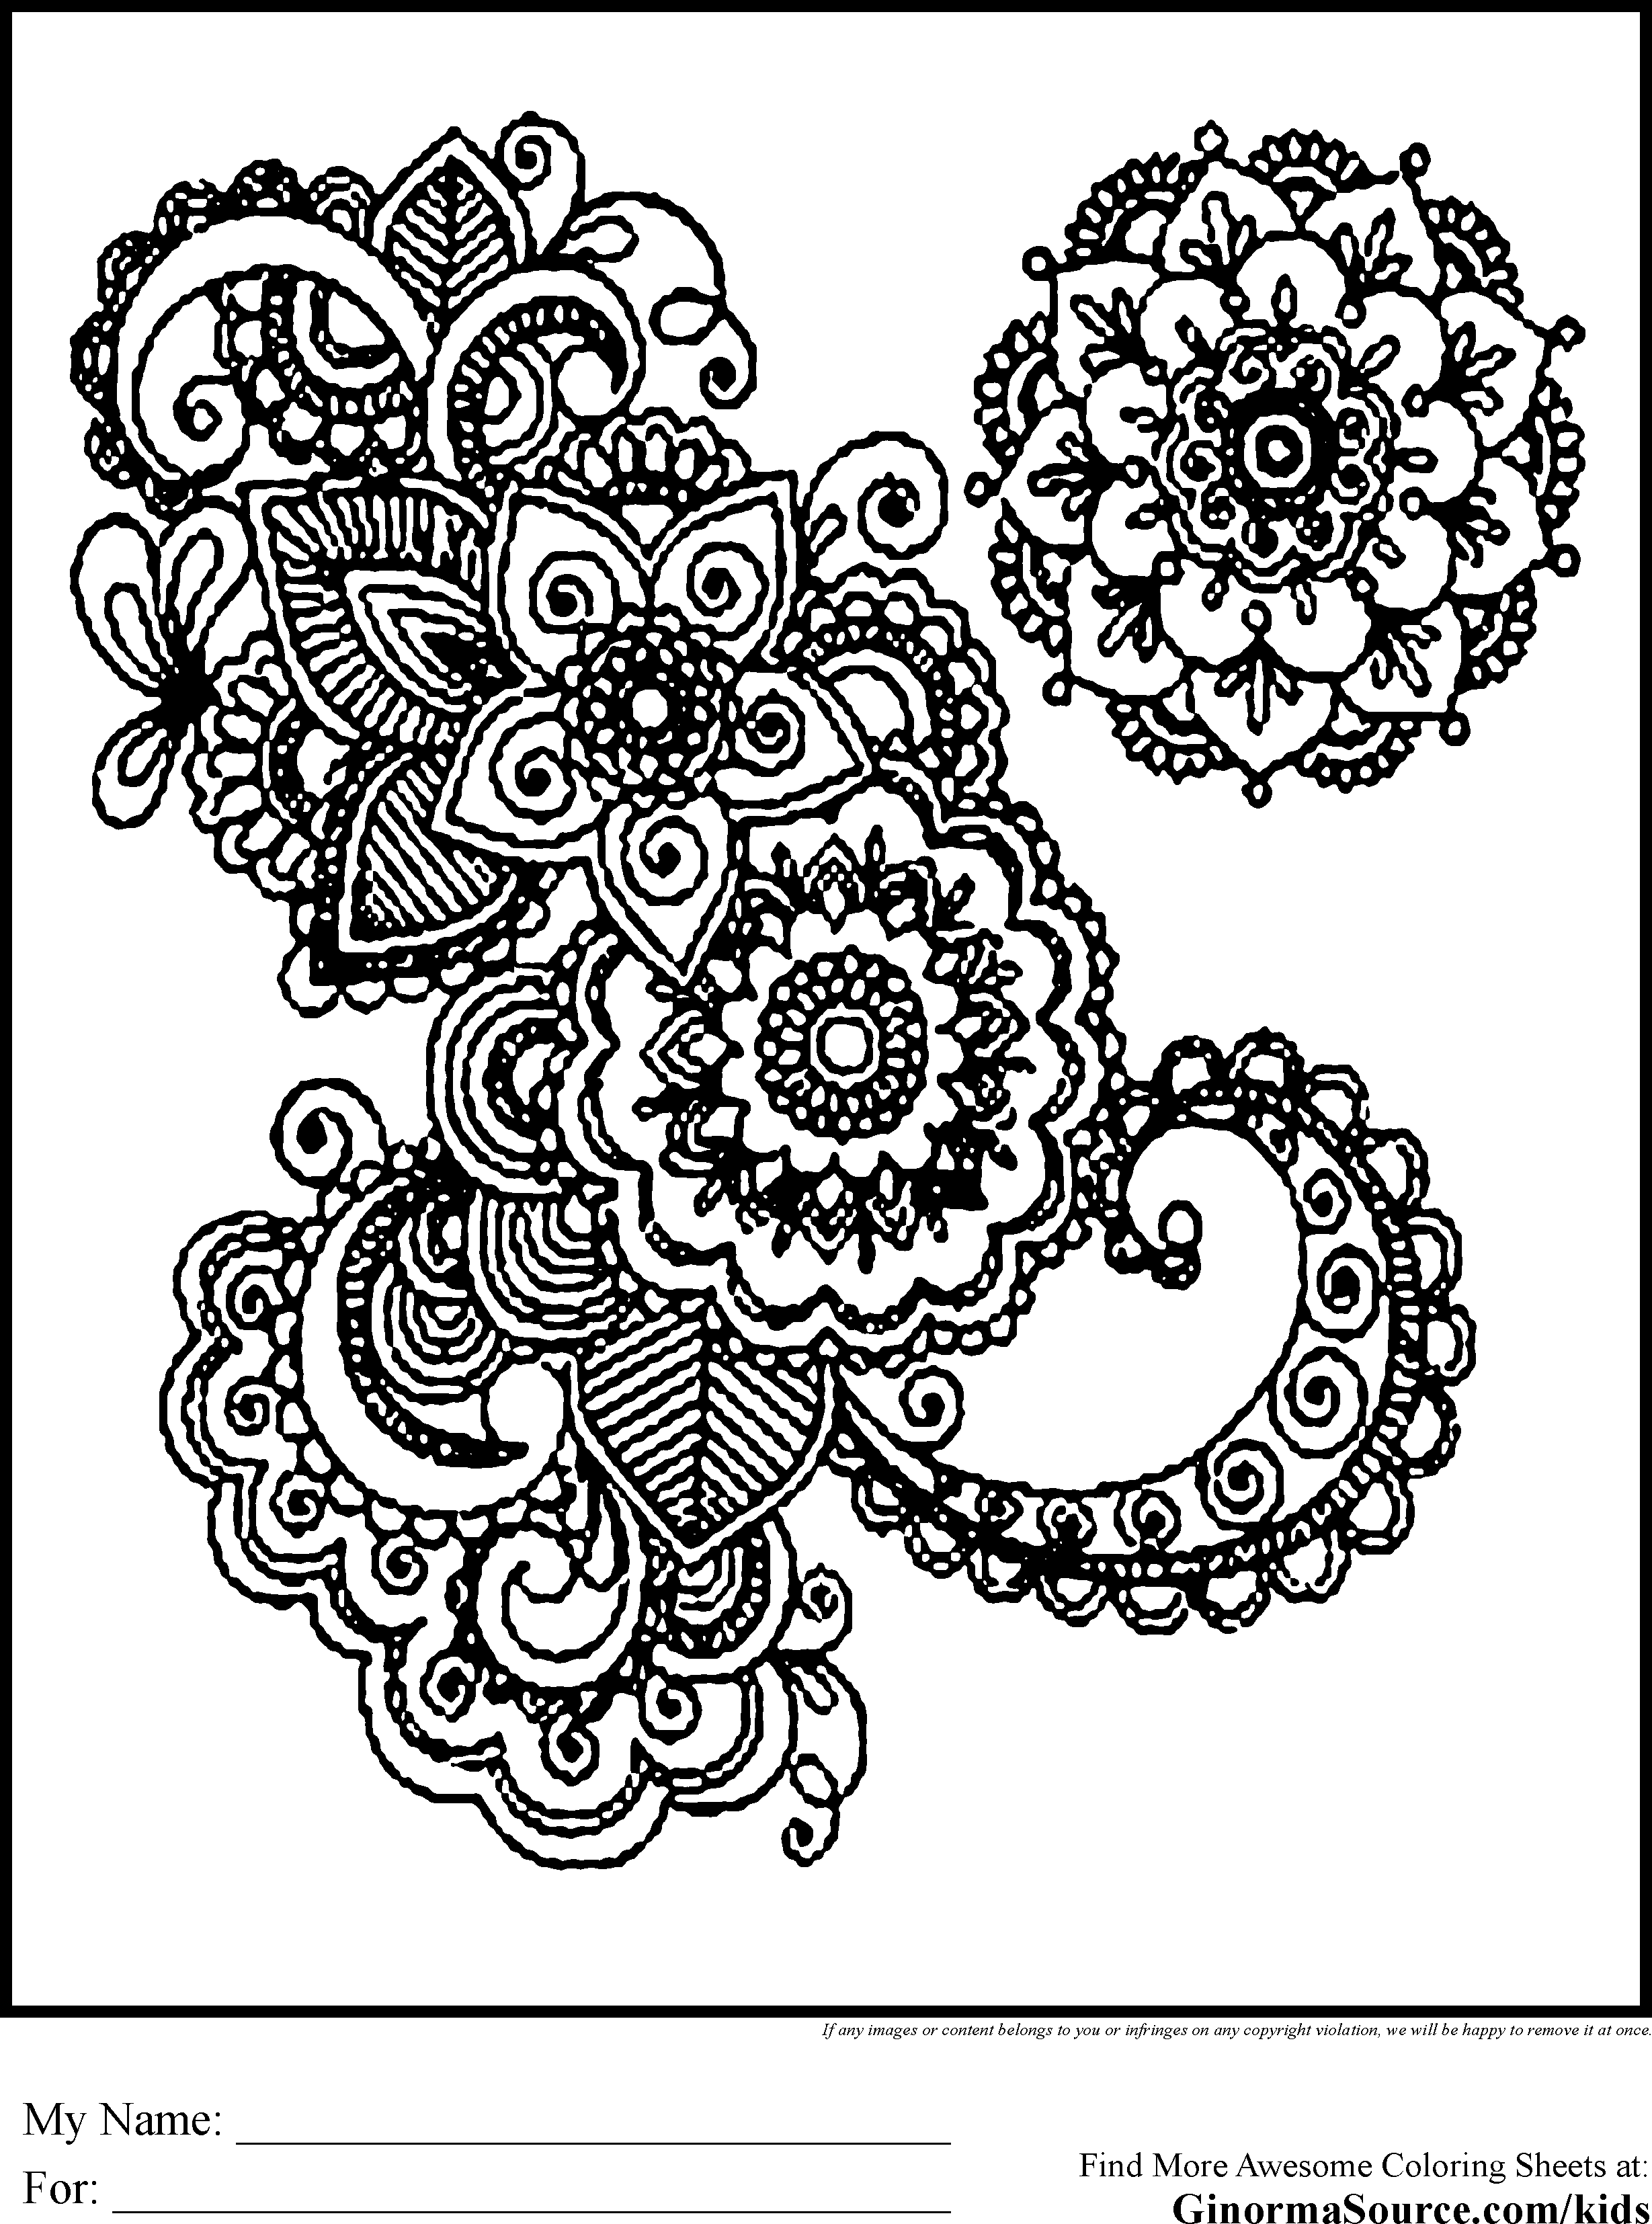 coloring pages for adults | Advanced Coloring Pages ...